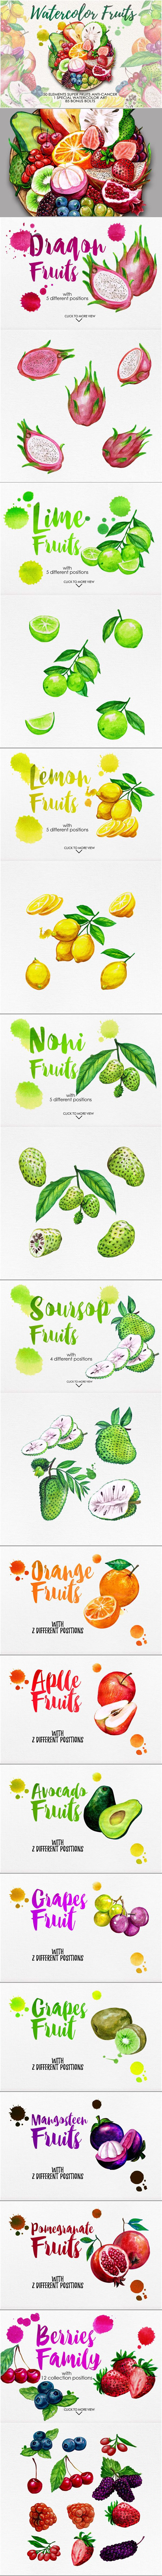 """Check out my @Behance project: """"Watercolor Fruits Vol. 4"""" https://www.behance.net/gallery/46406247/Watercolor-Fruits-Vol-4"""